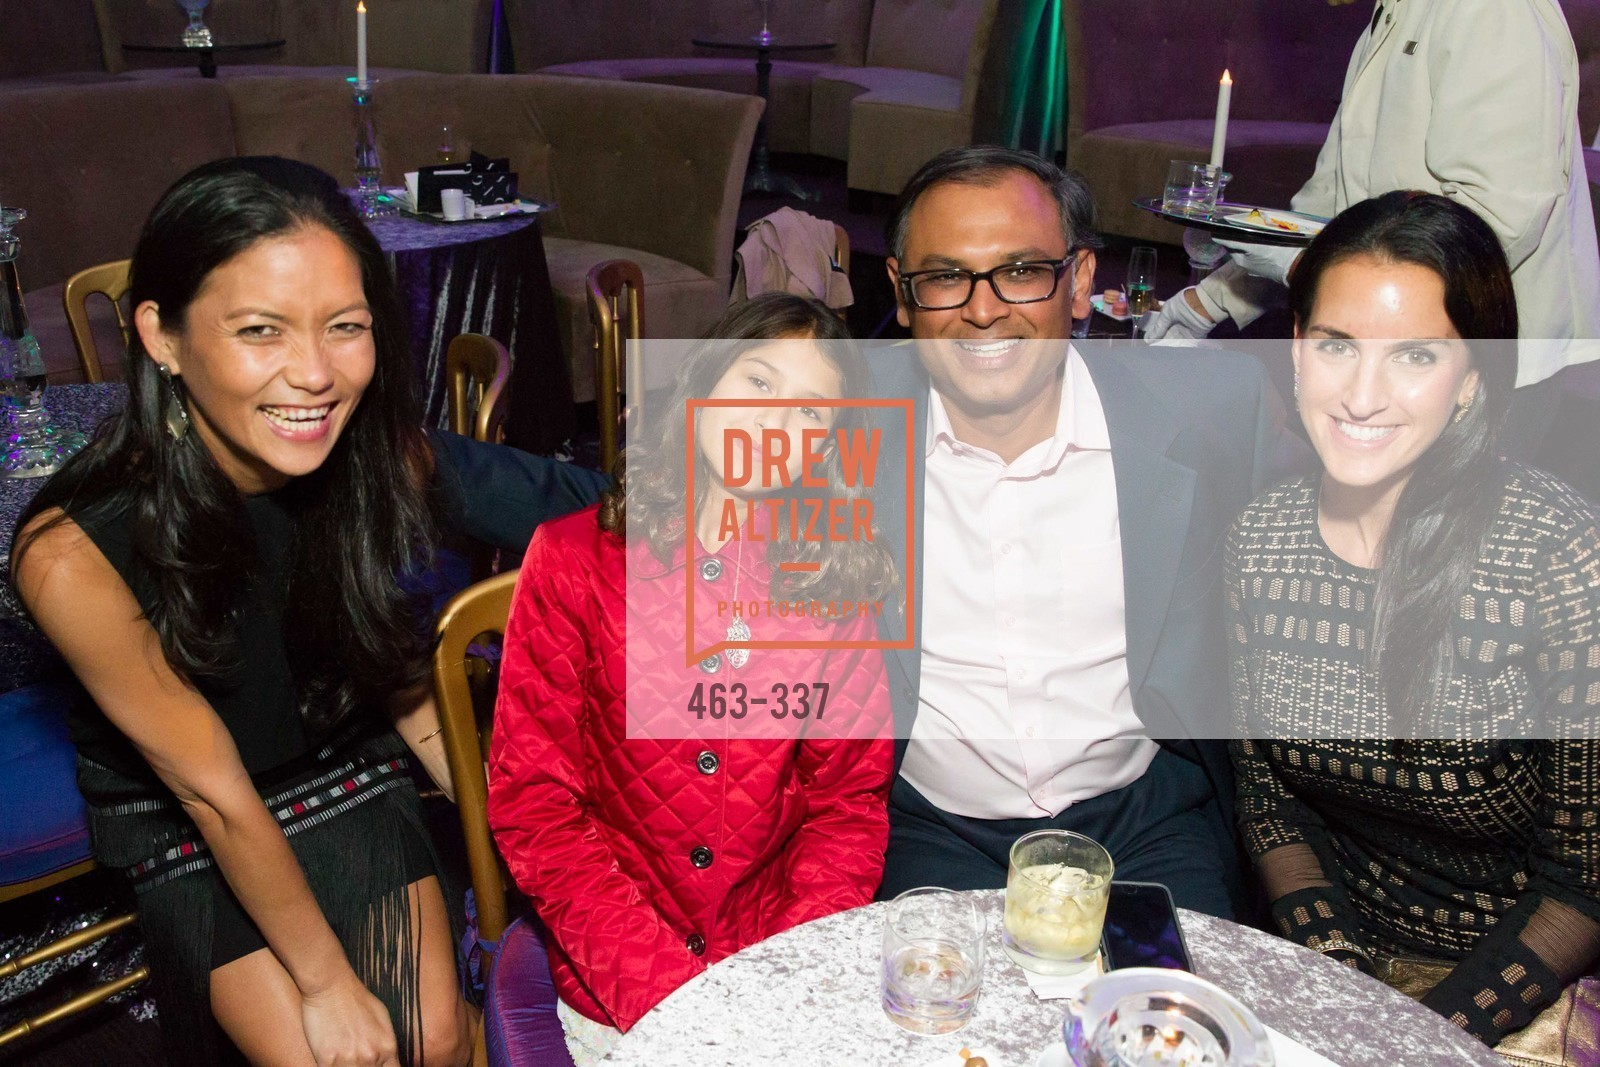 Jami Kirk, Sonia Khasi, Bosh Khasi, Emily Shasen, Jazz Legends At St. Regis Presents Jamie Cullum, St. Regis, October 3rd, 2015,Drew Altizer, Drew Altizer Photography, full-service agency, private events, San Francisco photographer, photographer california